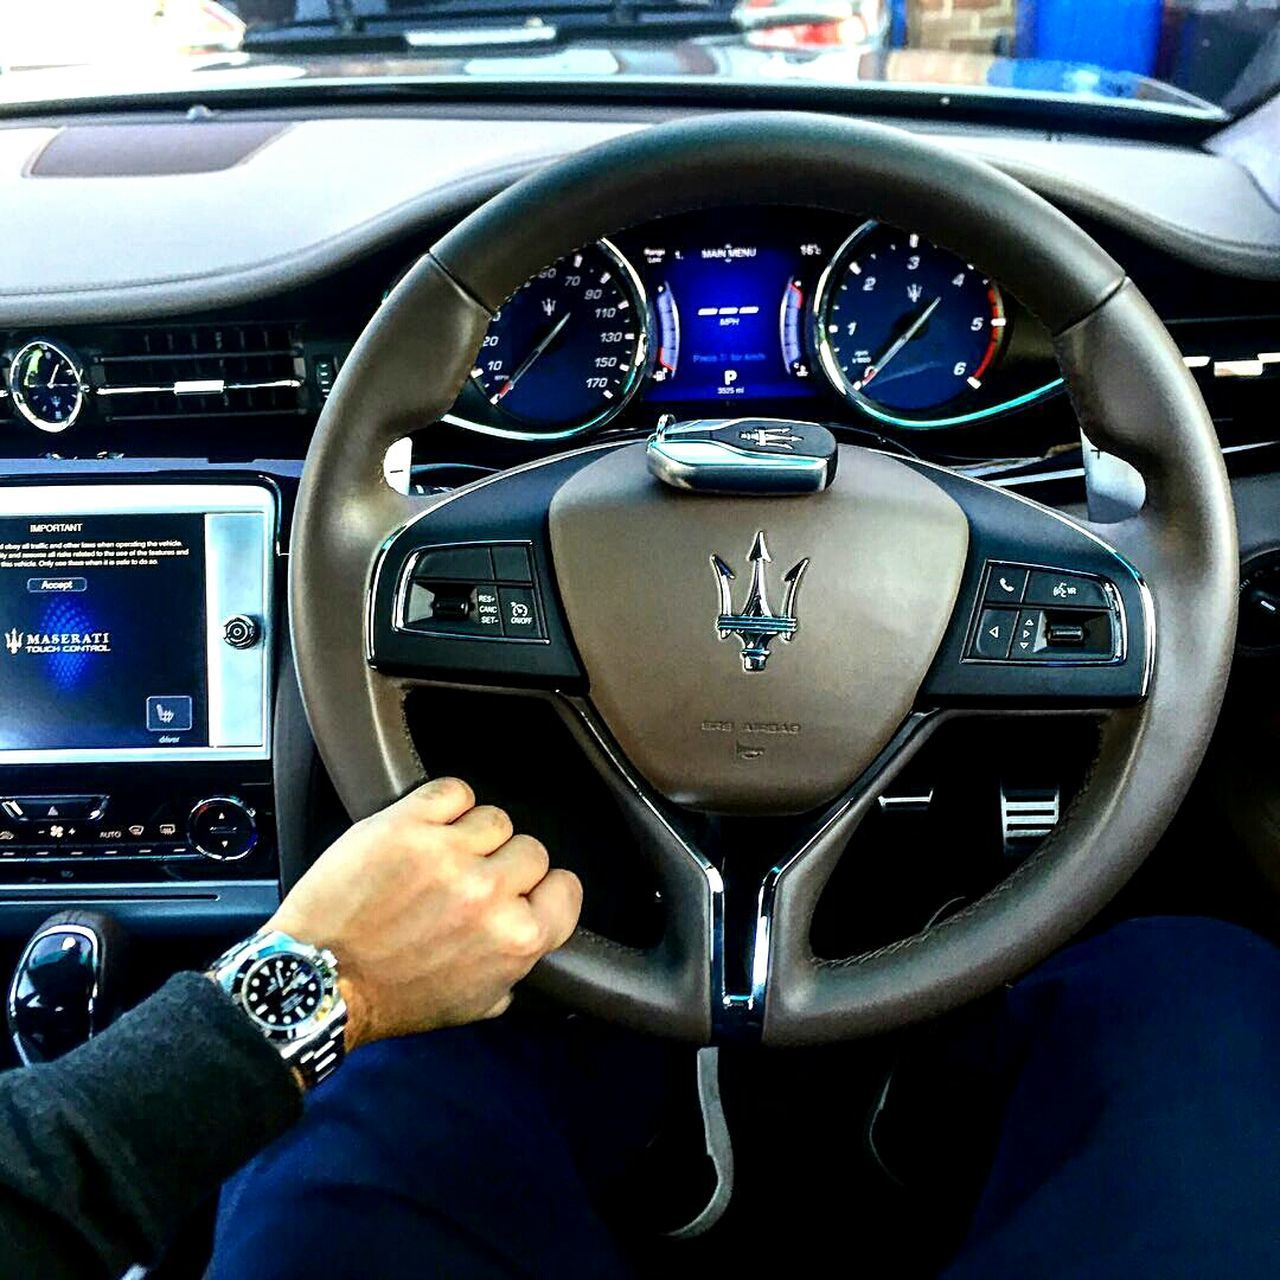 Xe DashboardThe Drive Technology Transportation Cockpit Control Panel Control Speedometer Air Vehicle Vehicle Interior Meter - Instrument Of Measurement Gauge Airplane Human Body Part Adult Adults Only People Human Hand Piloting Day car